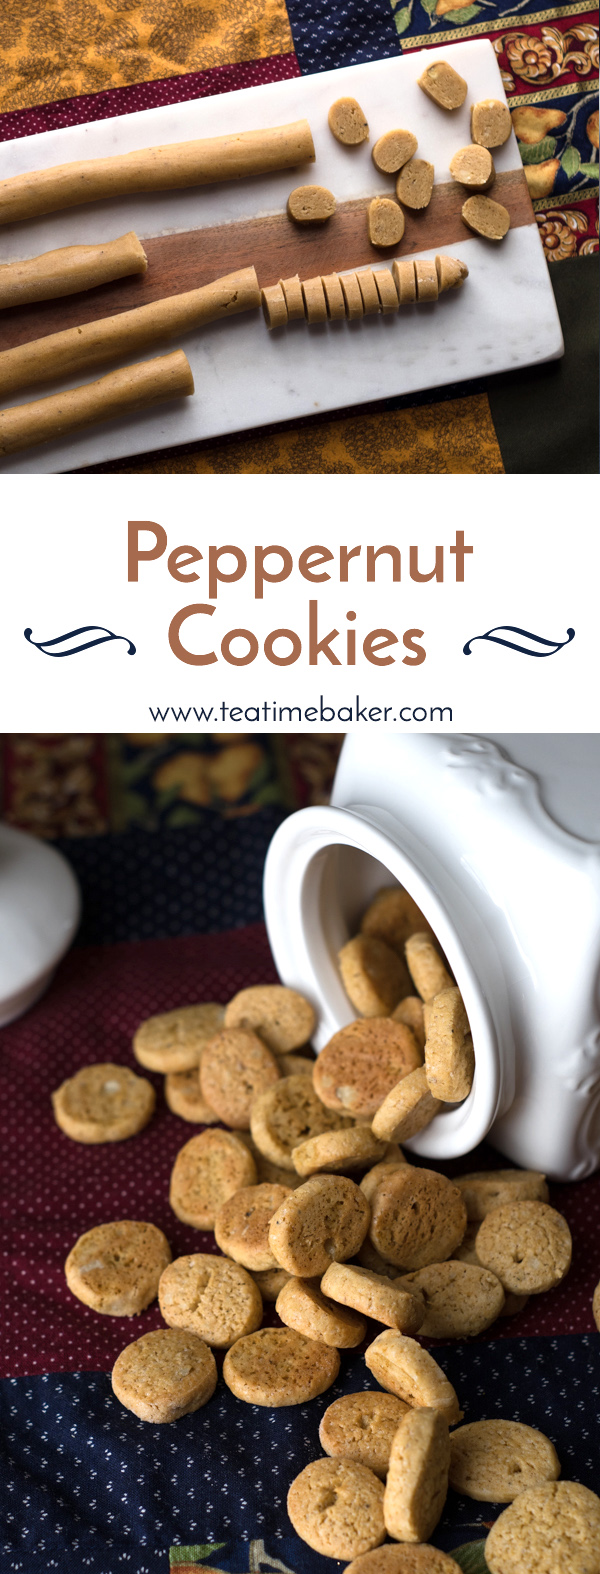 Peppernut Cookies